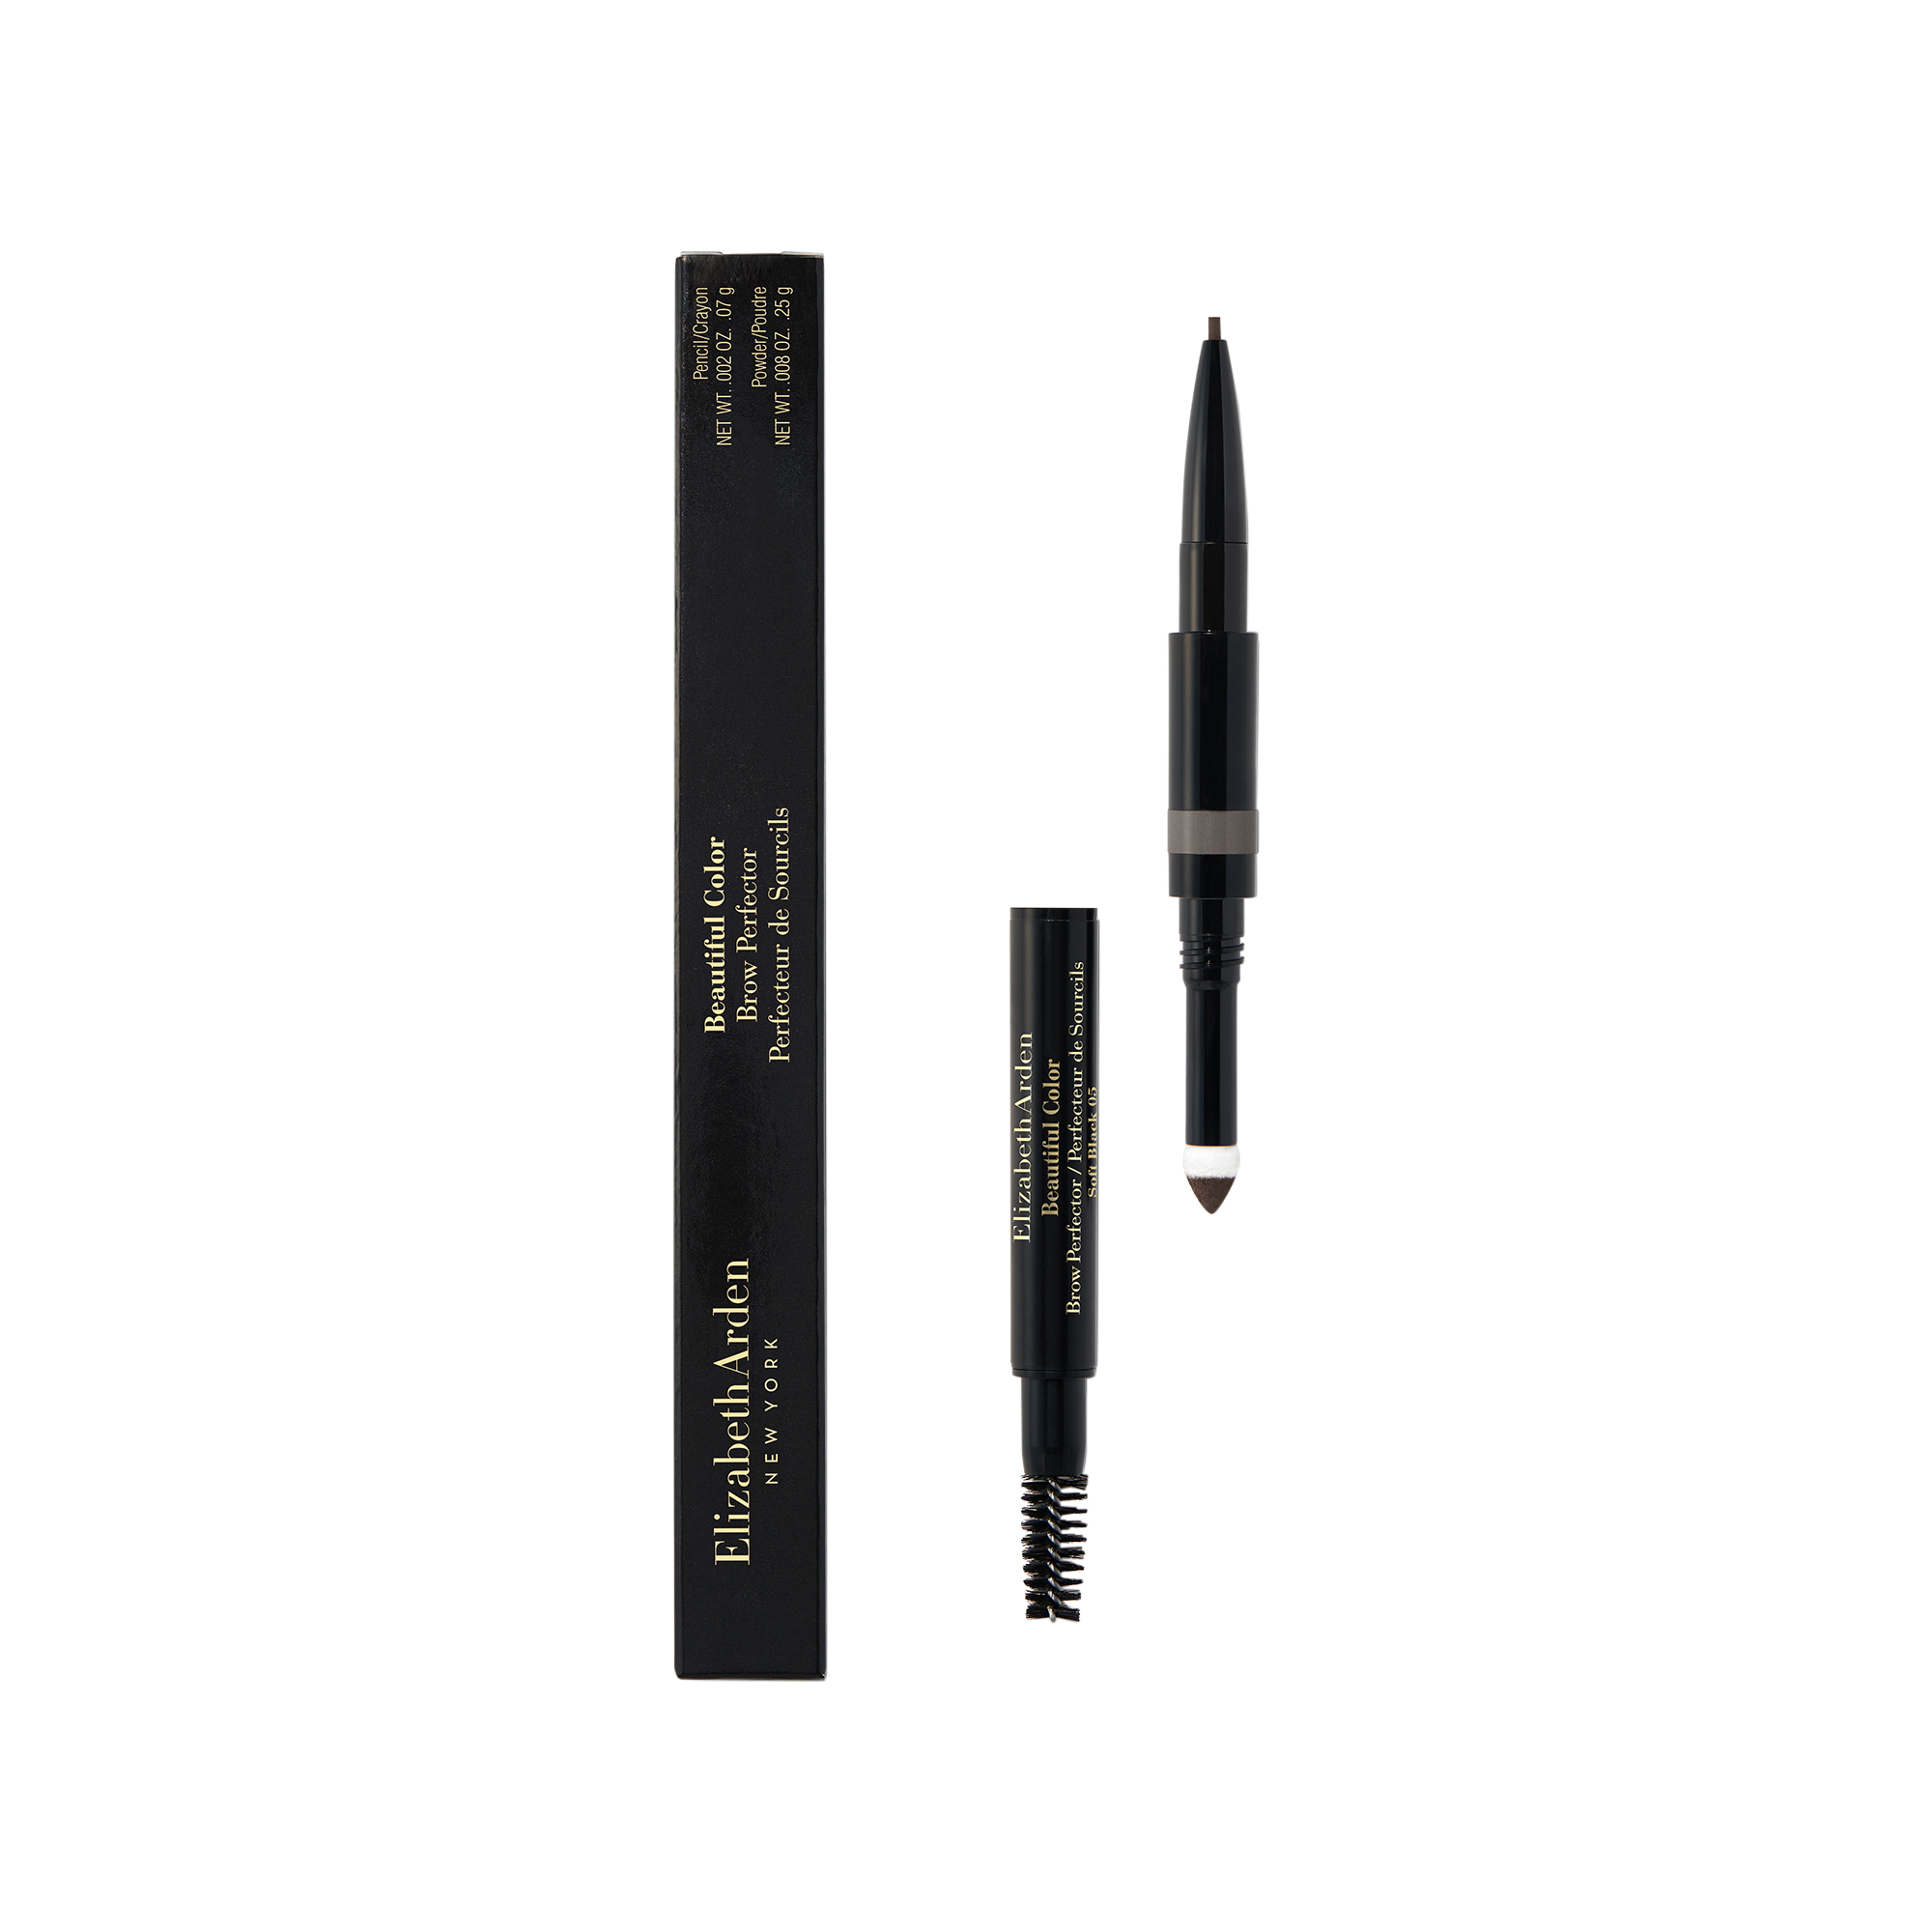 Elizabeth Arden Beautiful Color Brow Perfector 3-in-1 Elizabeth Arden Ögonbryn